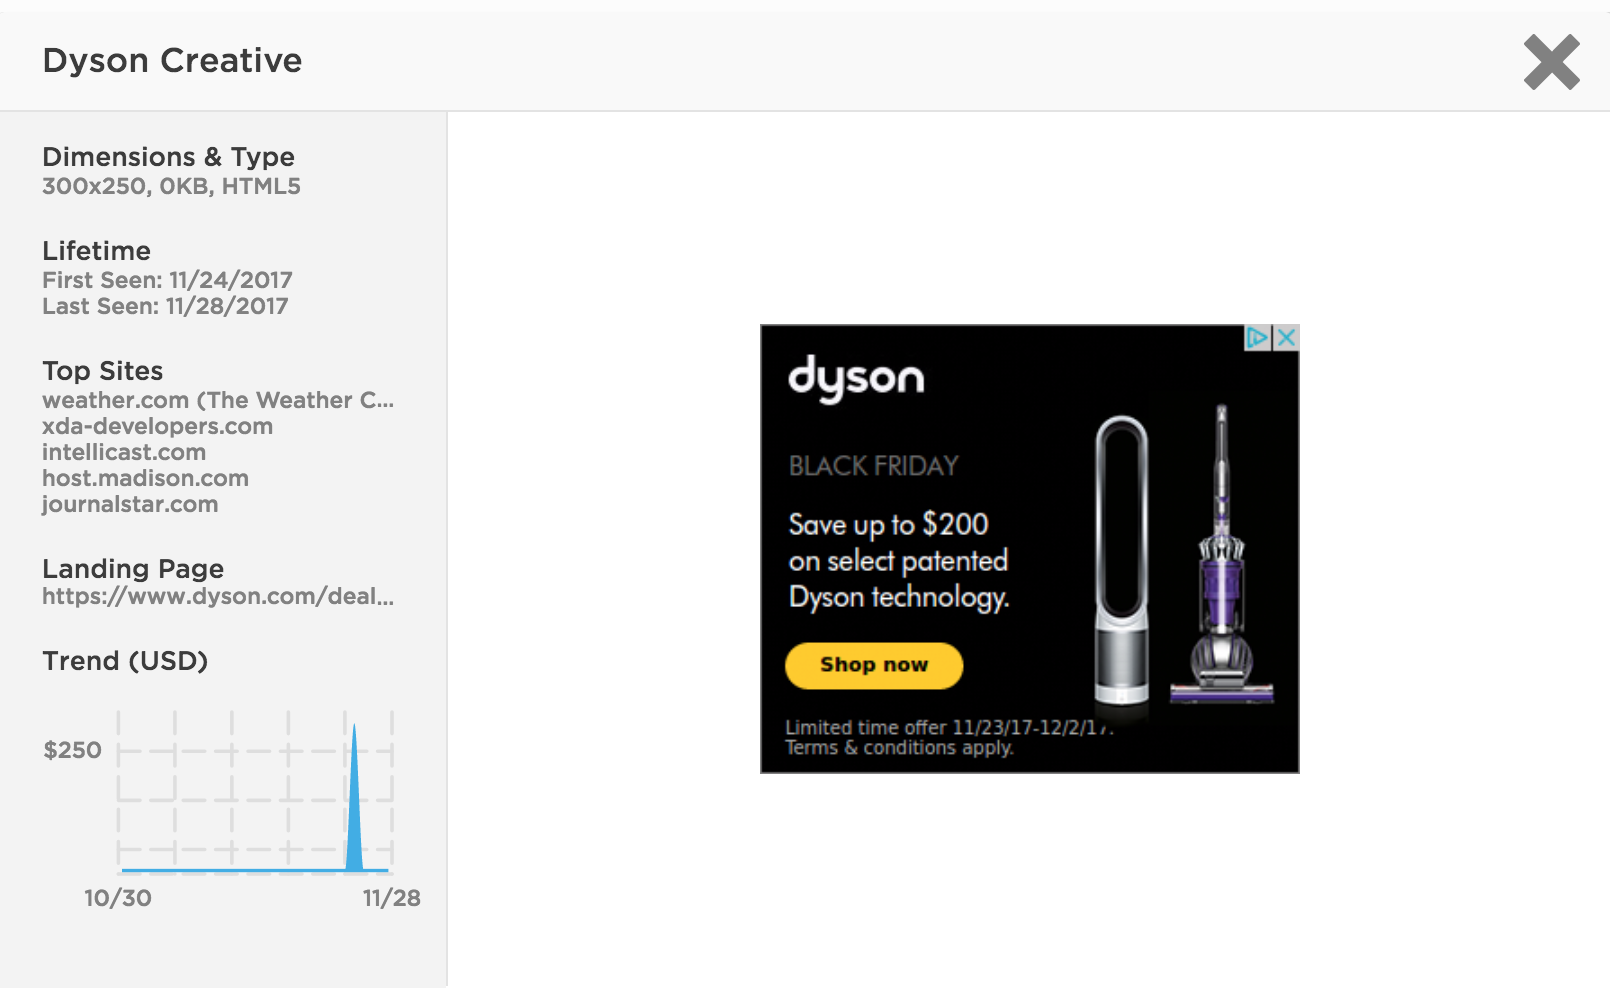 dyson_creative_black_friday.png